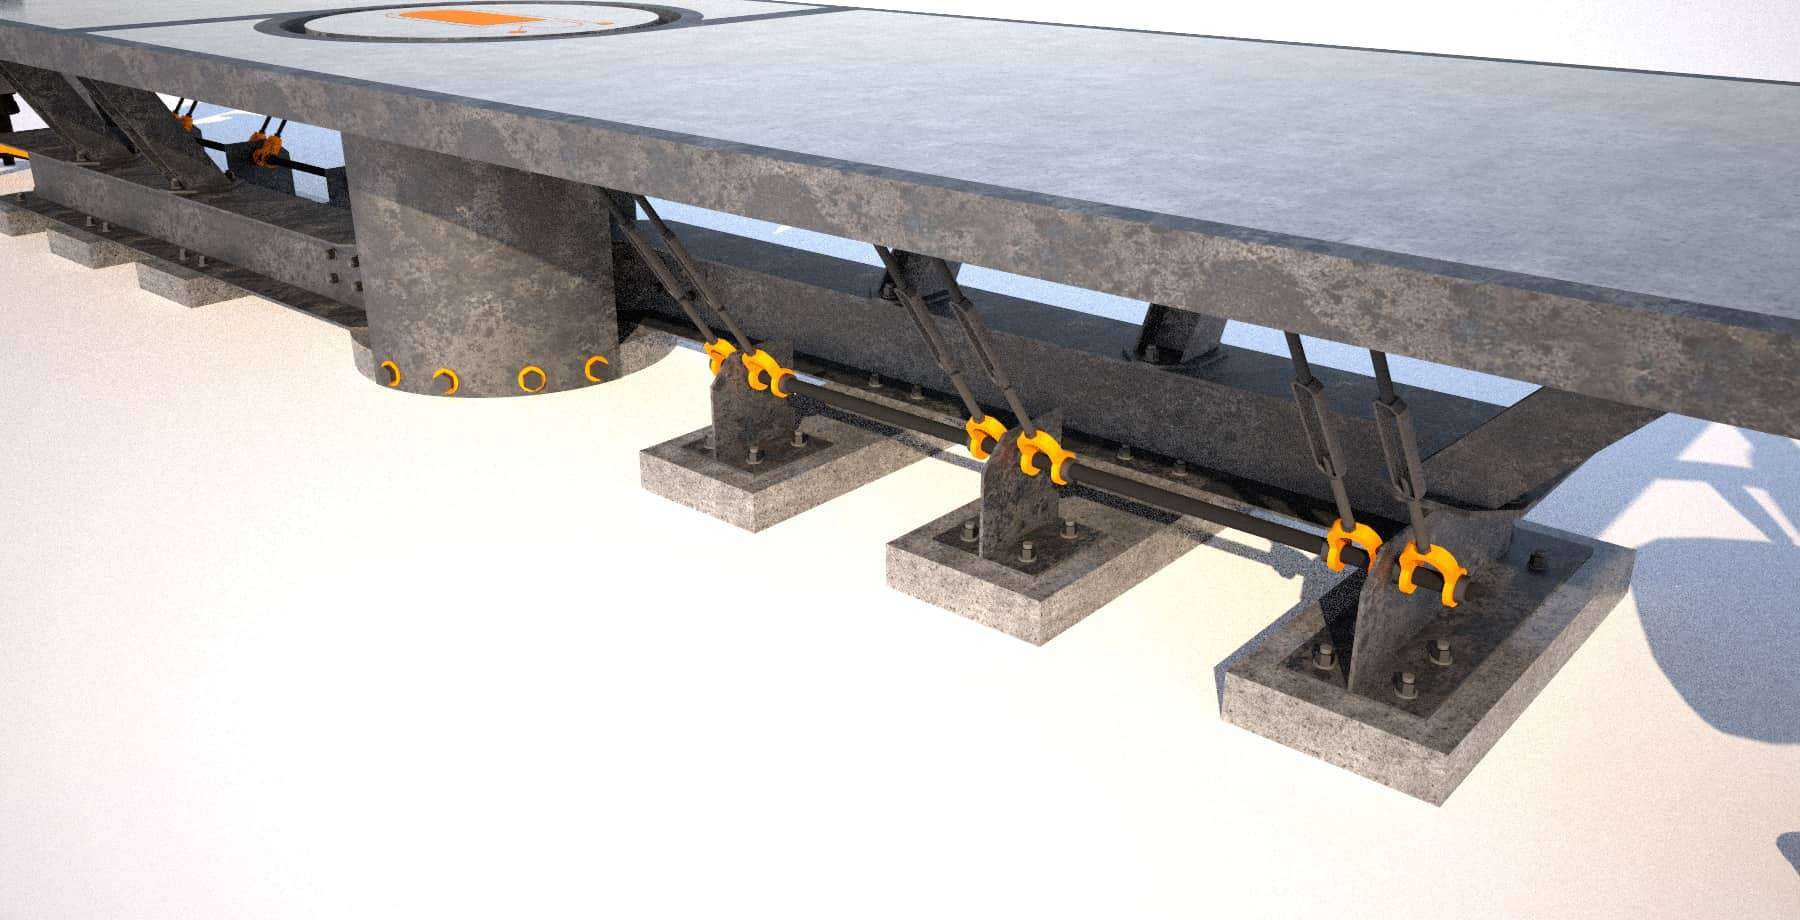 4 Steel and concrete conference room table, base angle closeup 1, Designs by Rudy